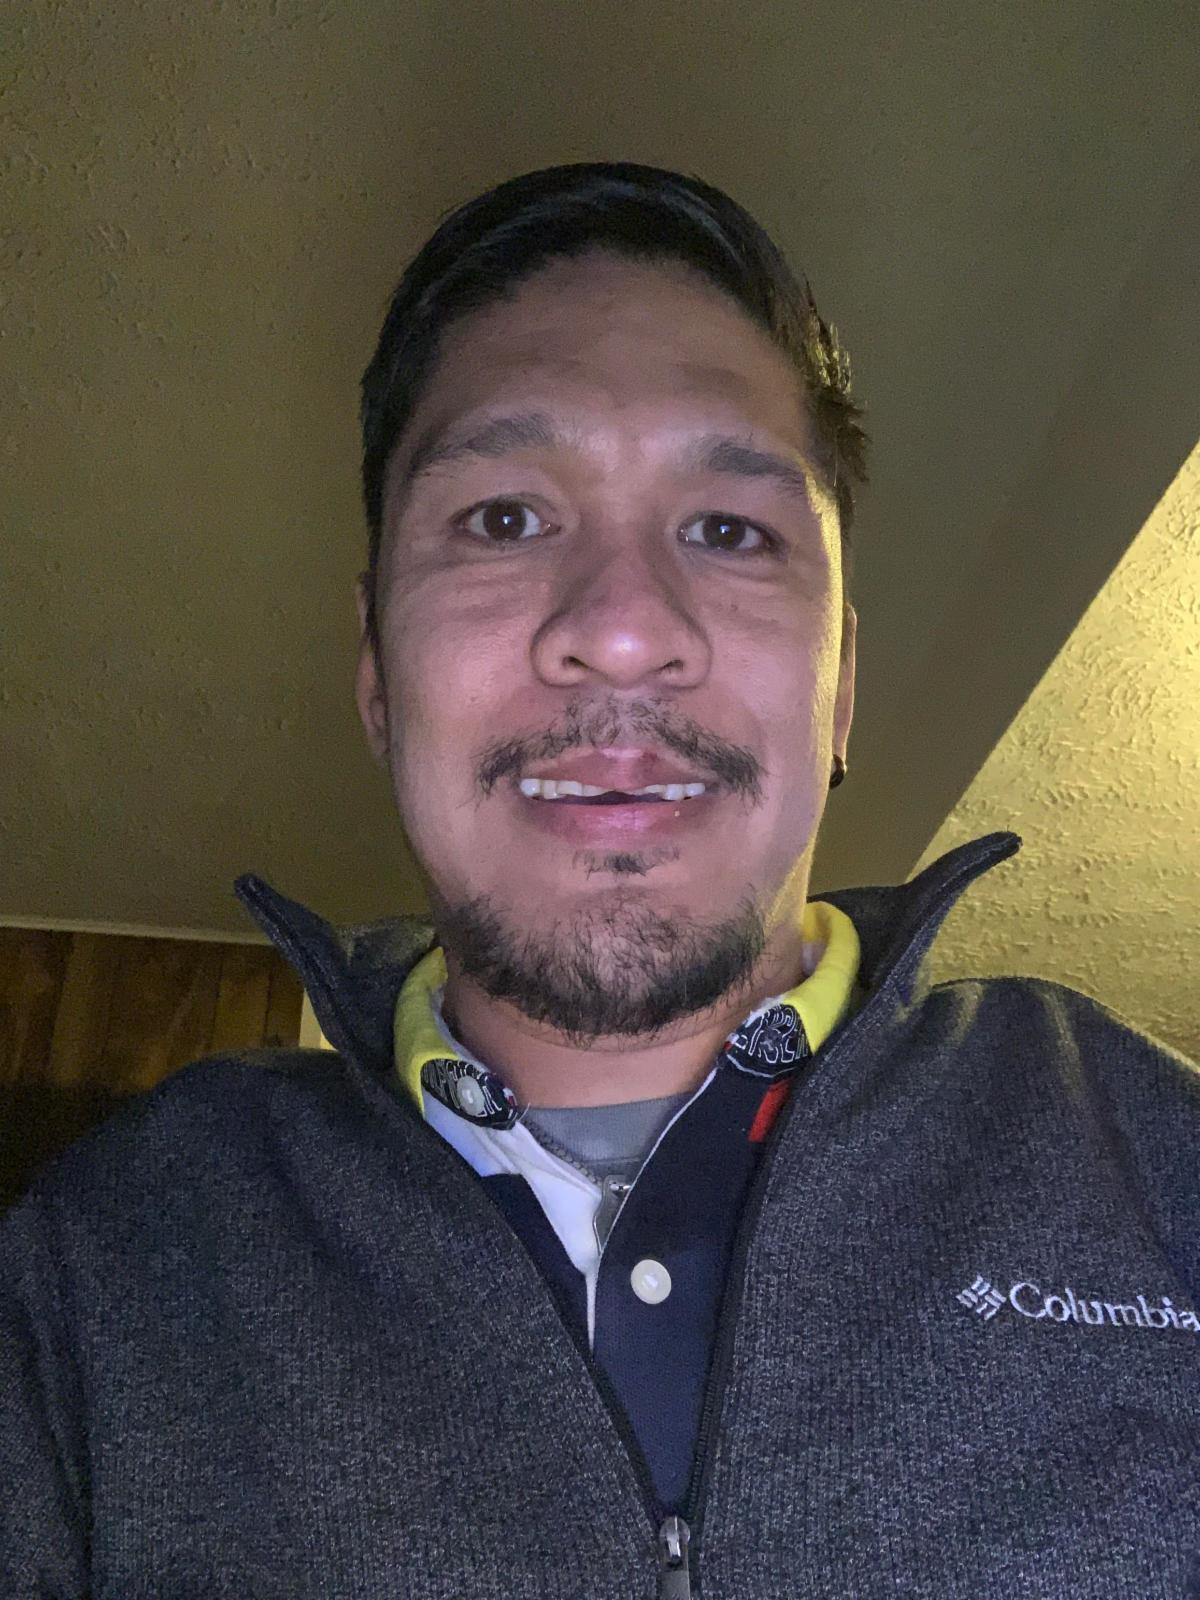 Close up of Bong DelRosario.  He is wearing gray pullover.